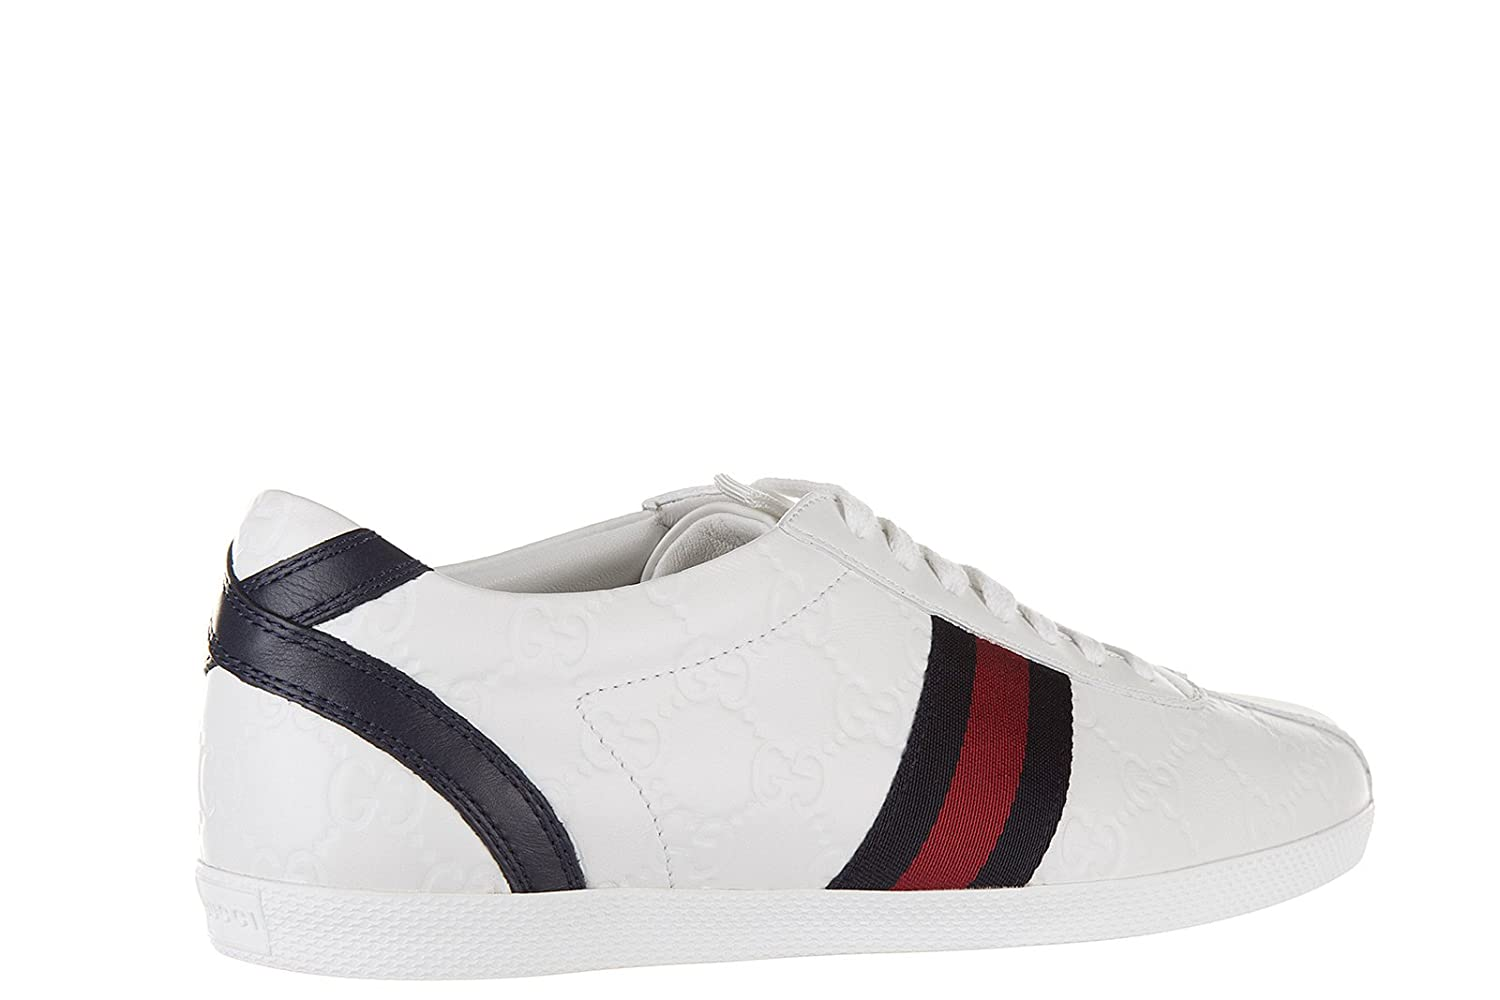 03381fac952 Gucci Women s Shoes Leather Trainers Sneakers mirò Soft guccissima White UK  Size 5 408496 AXWL0 9064  Amazon.co.uk  Shoes   Bags